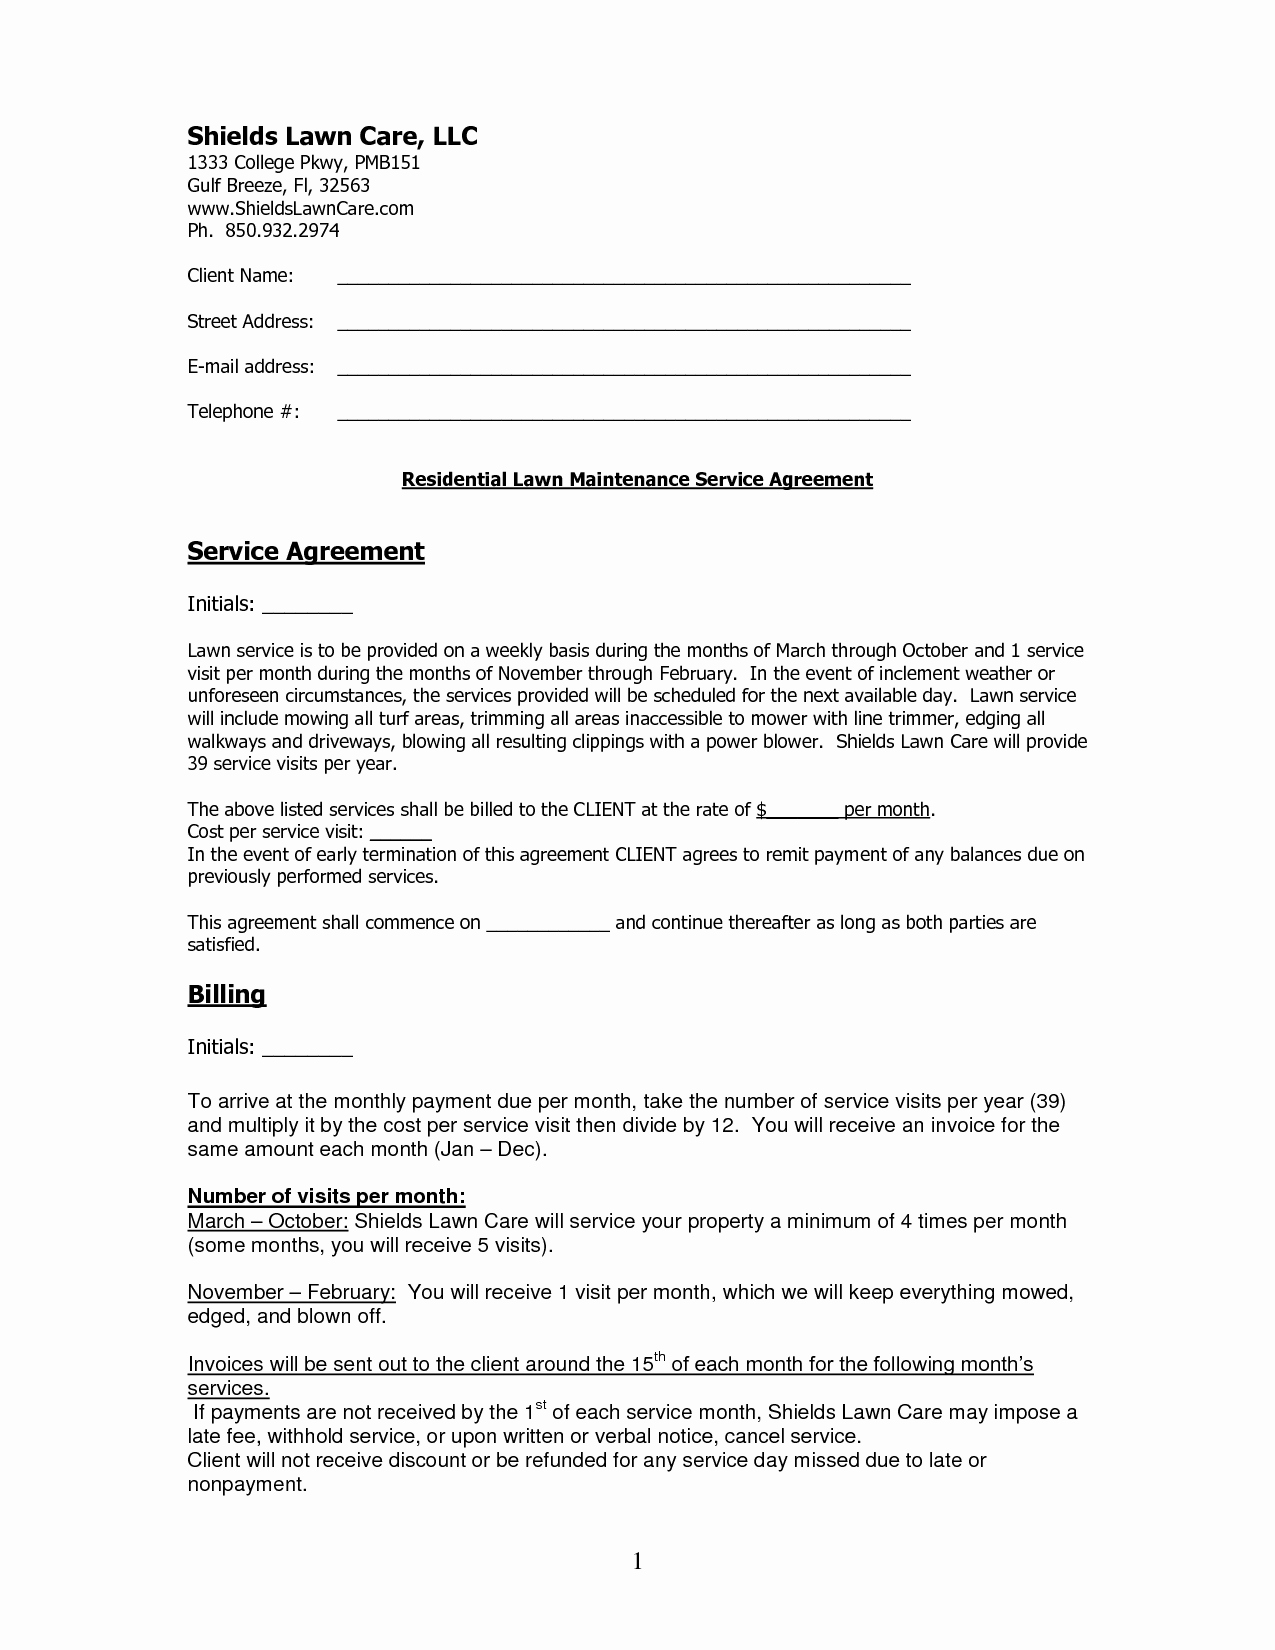 Lawn Care Contract Template Free Awesome Contract Lawn Care Contract Template